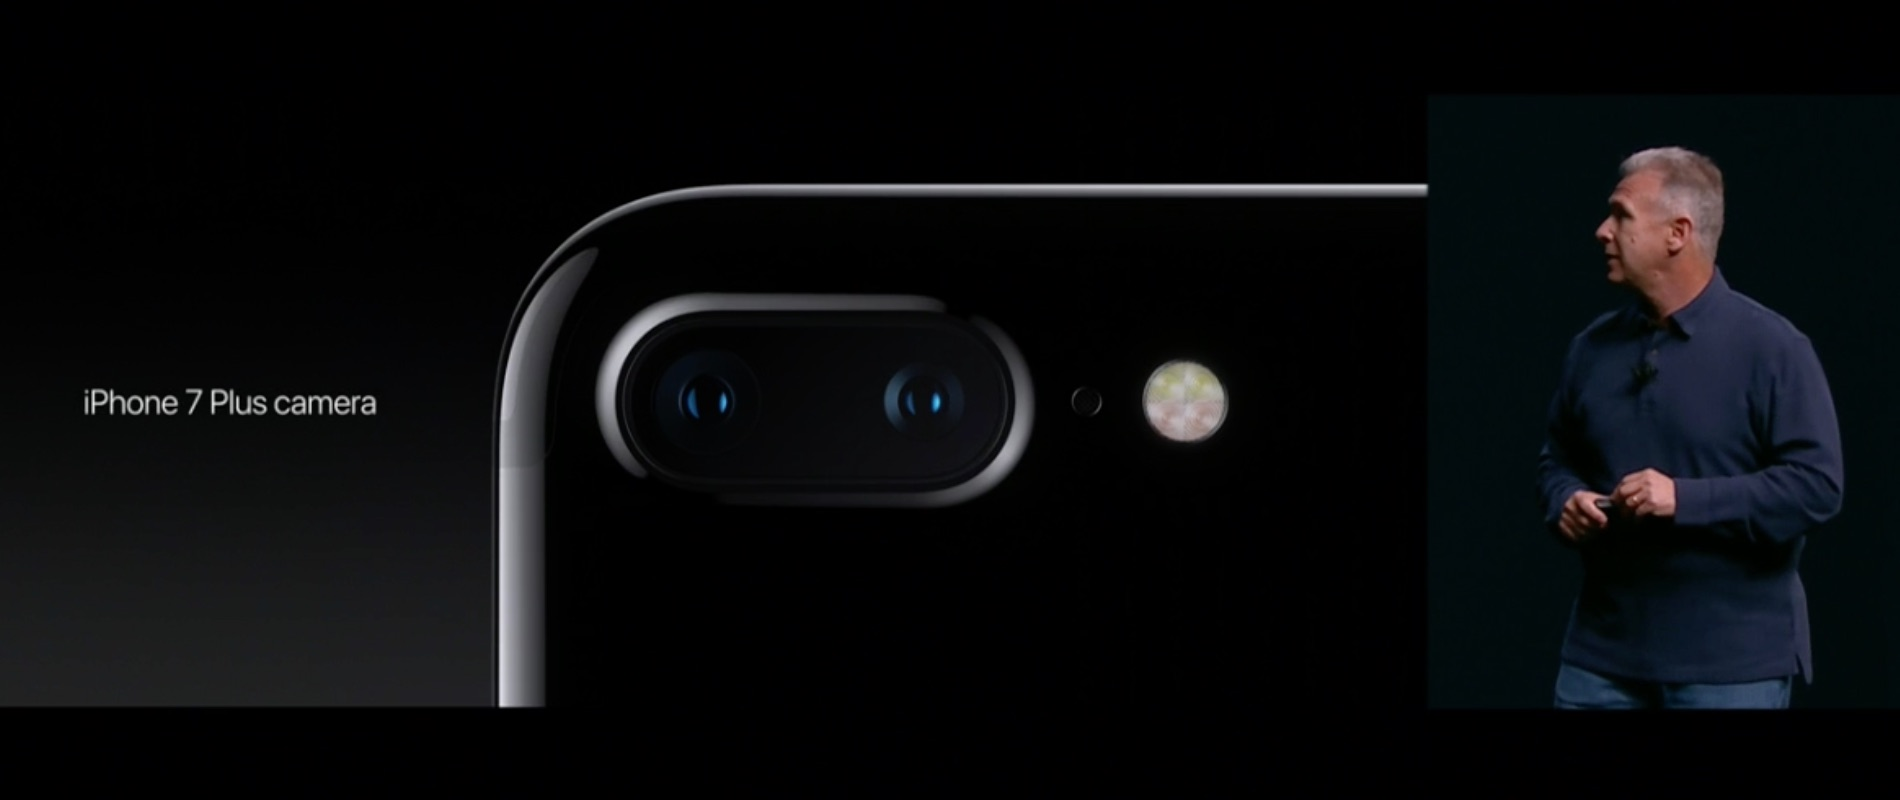 iphone7-plus-special-events-2016-sep-16